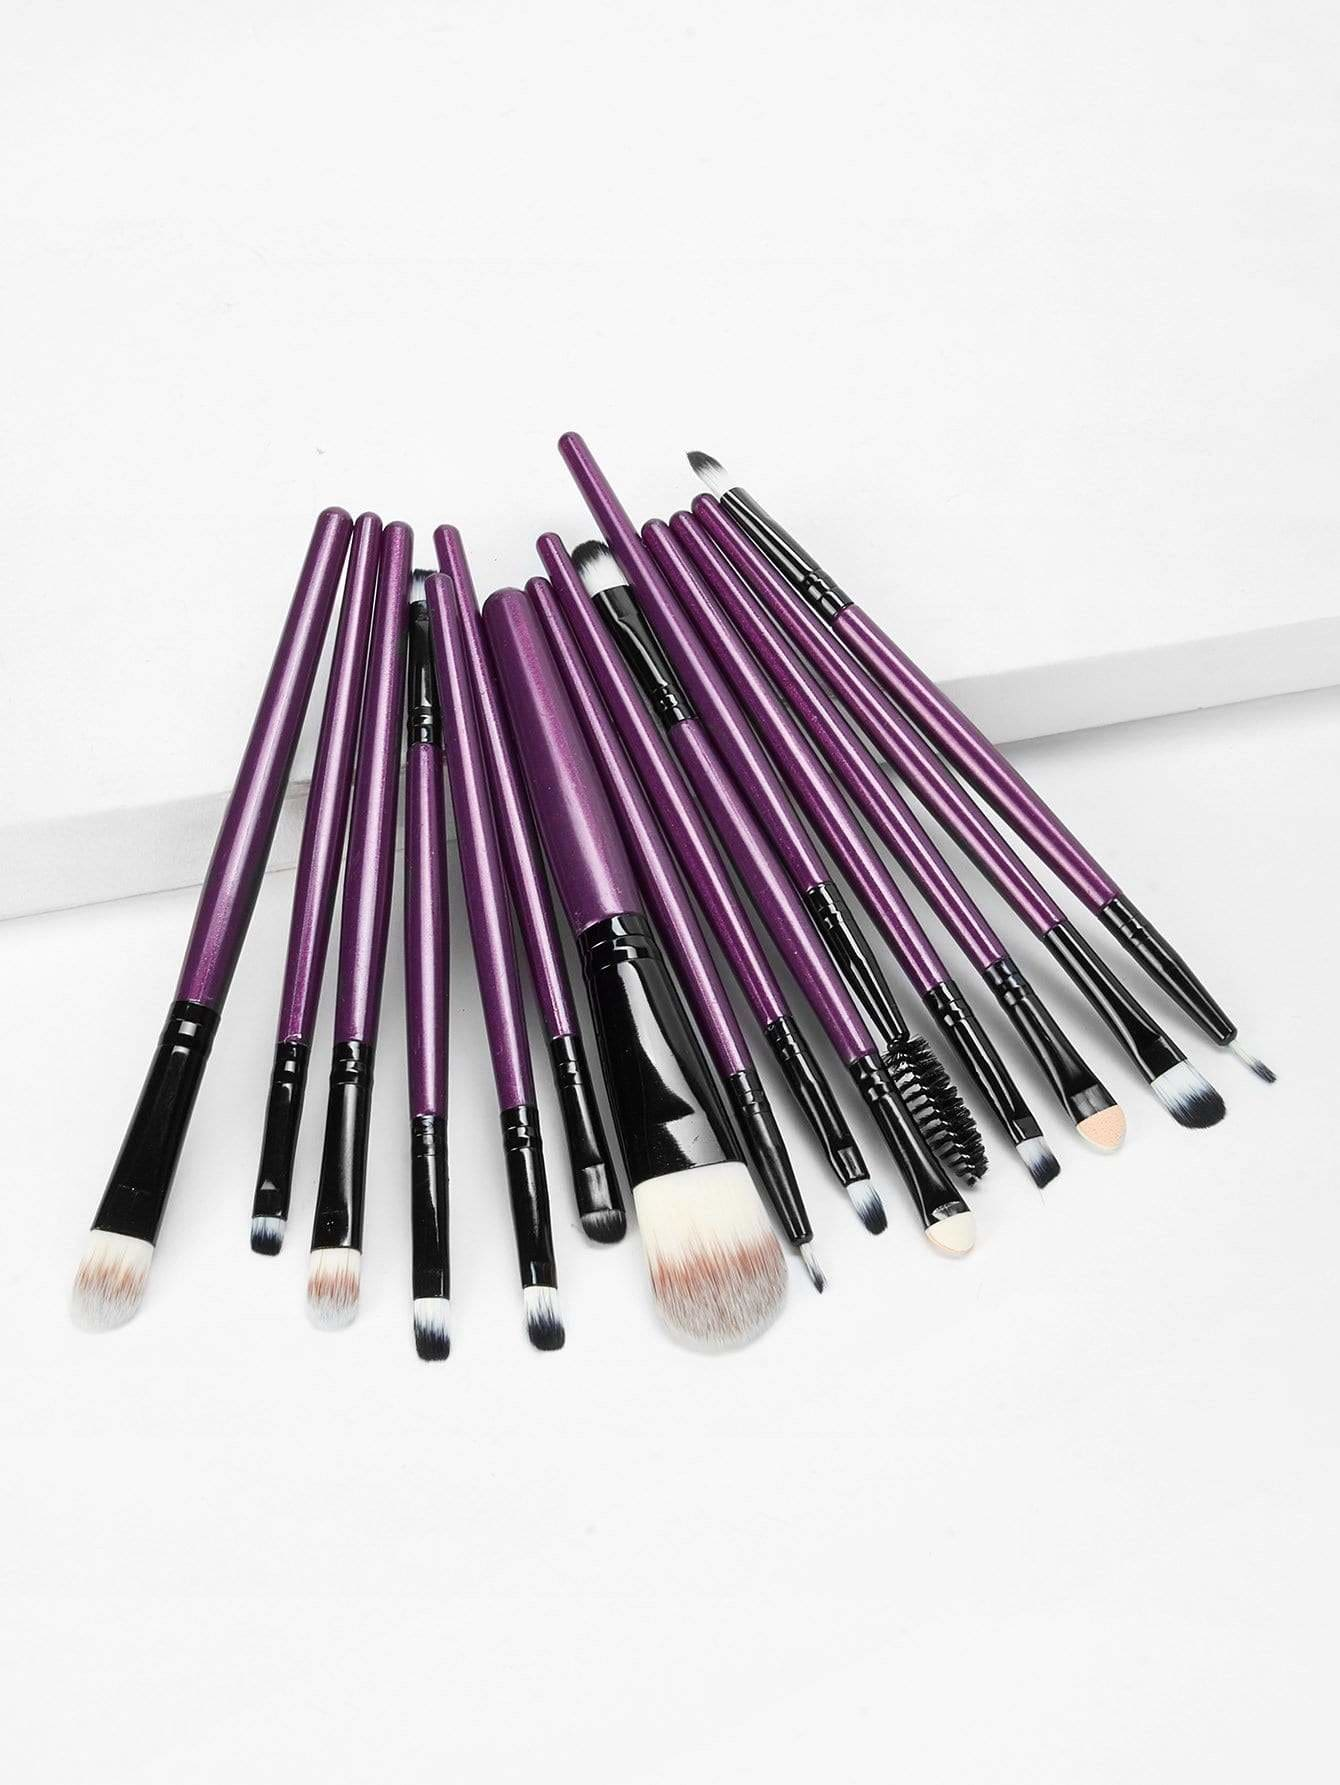 Two Tone Handle Makeup Brushes 15Pcs - Makeup Brushes